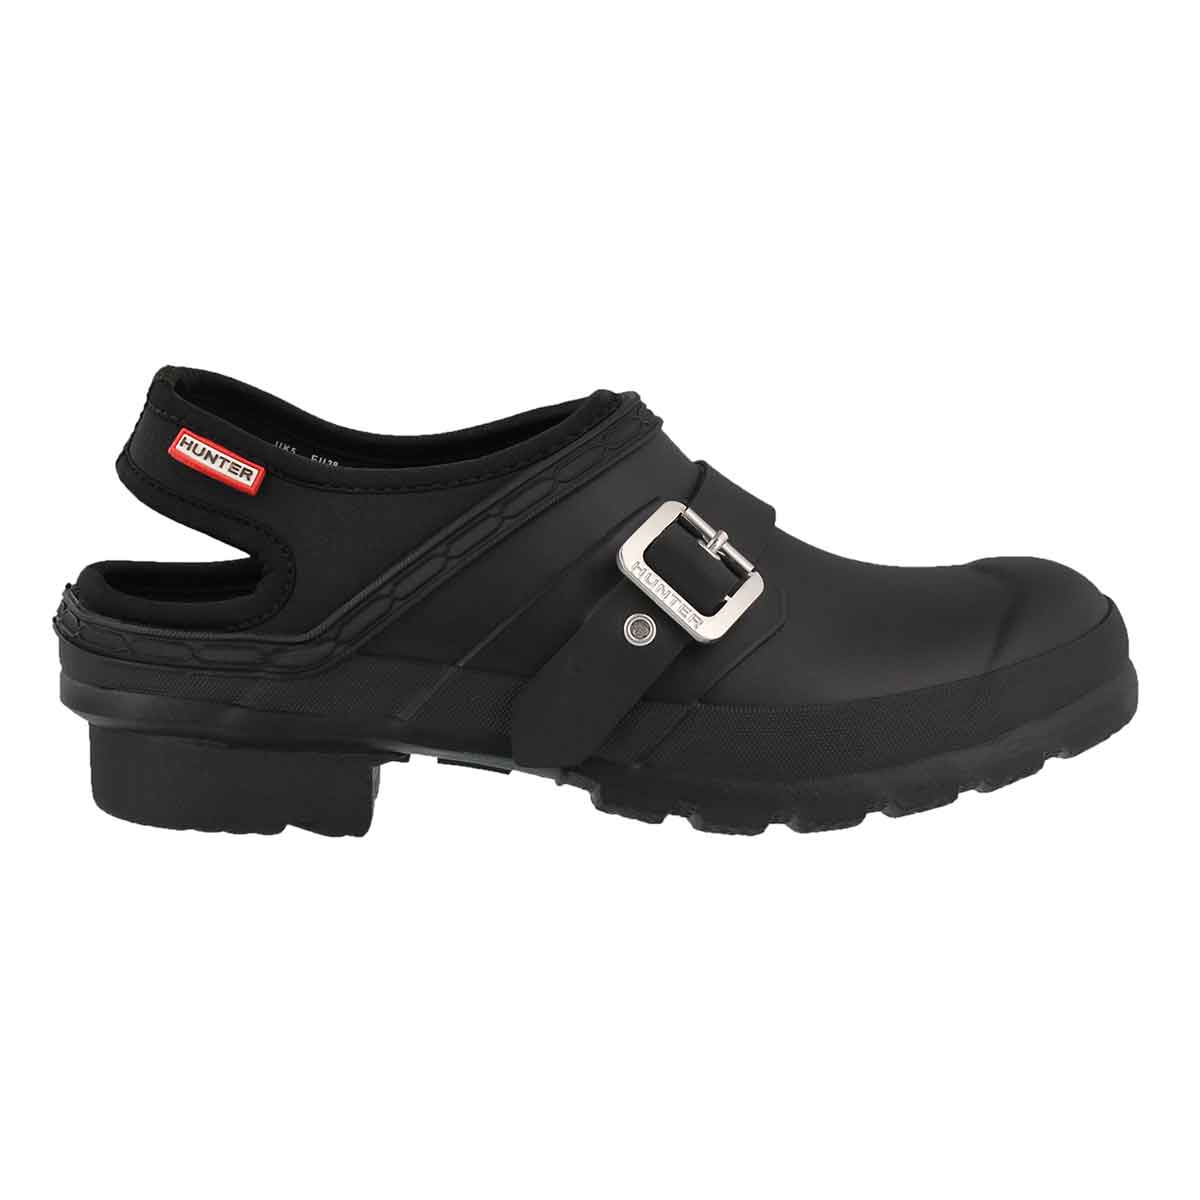 Lds Original black casual clog